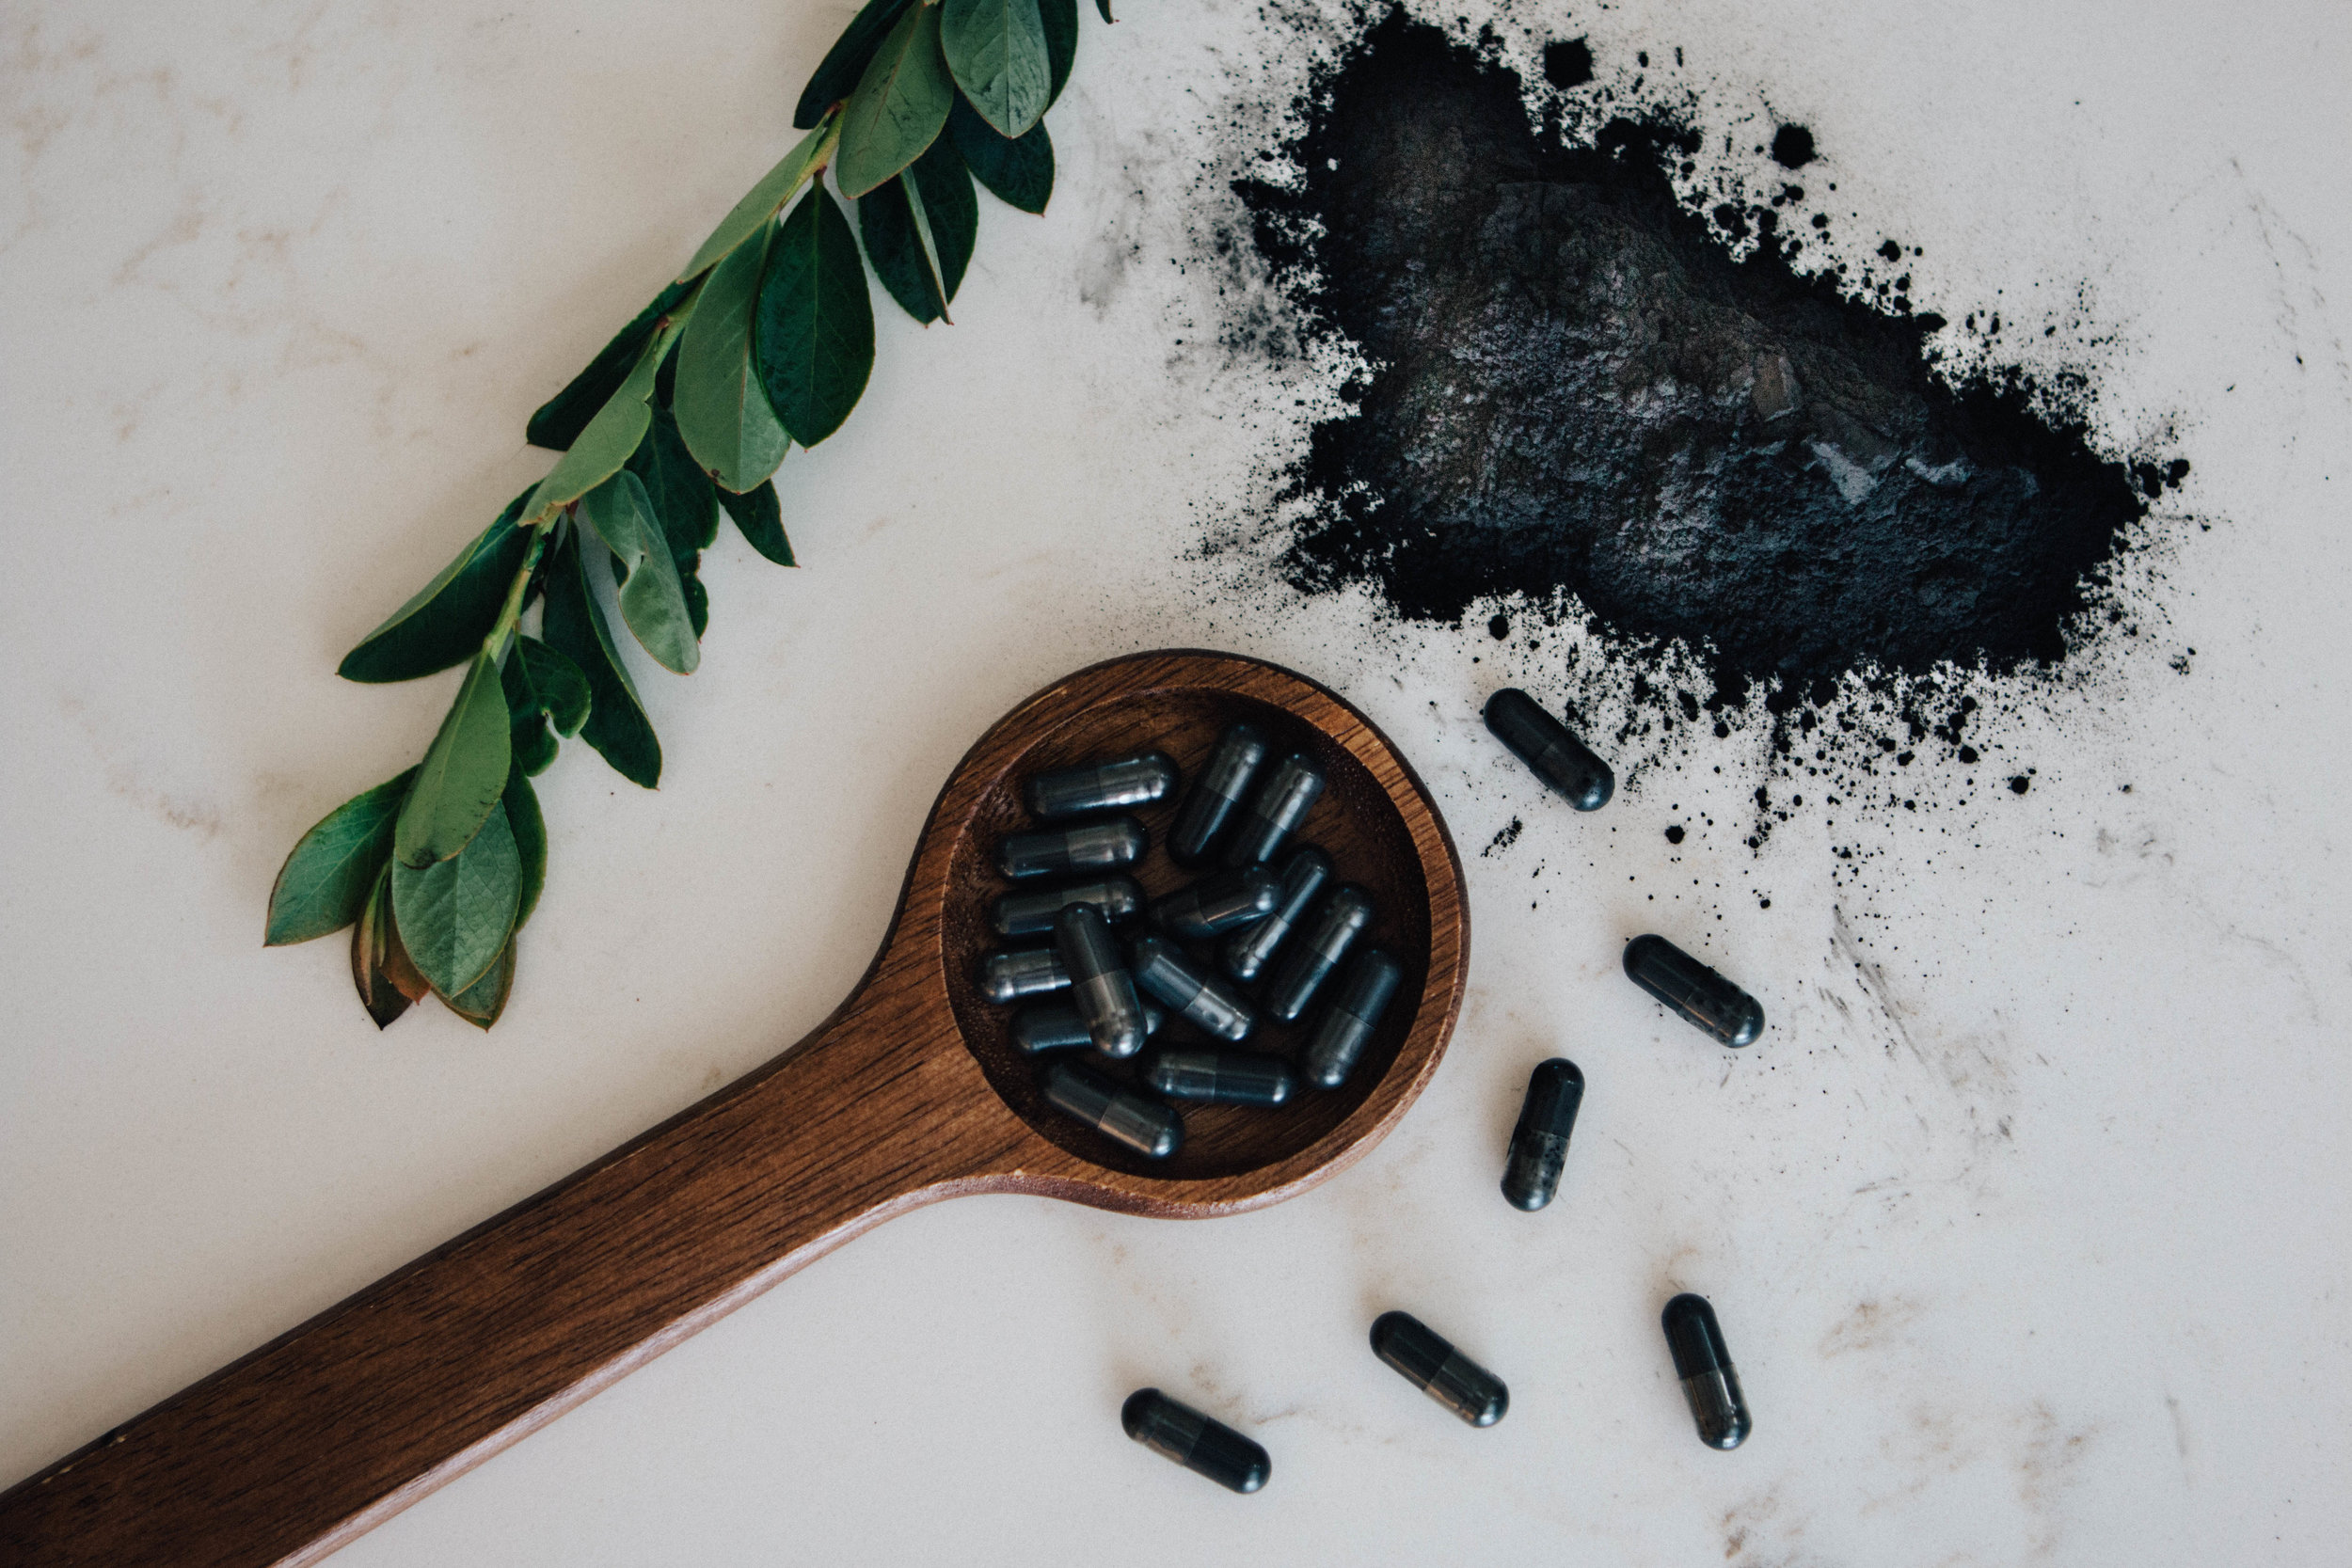 A CHARCOALTWO-DAY REBOOT: - Over the course of two-days, you can take charcoal capsules 90 minutes before each meal as away to reboot your digestive tract. It also binds to excess gas, which can reduce bloating.